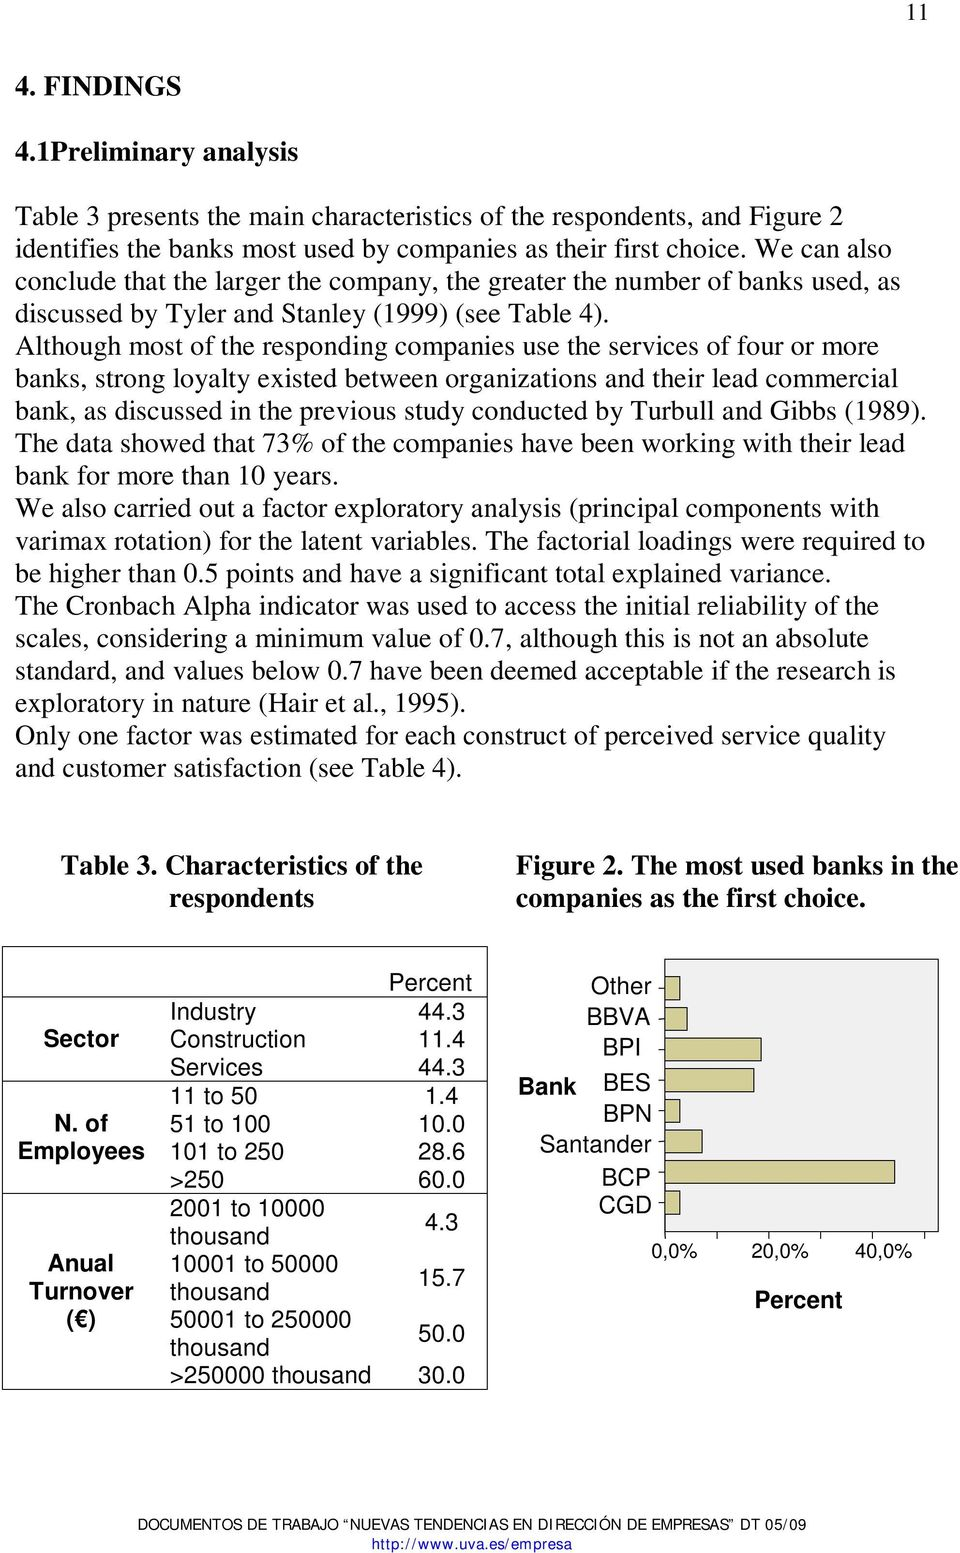 Although most of the responding companies use the services of four or more banks, strong loyalty existed between organizations and their lead commercial bank, as discussed in the previous study